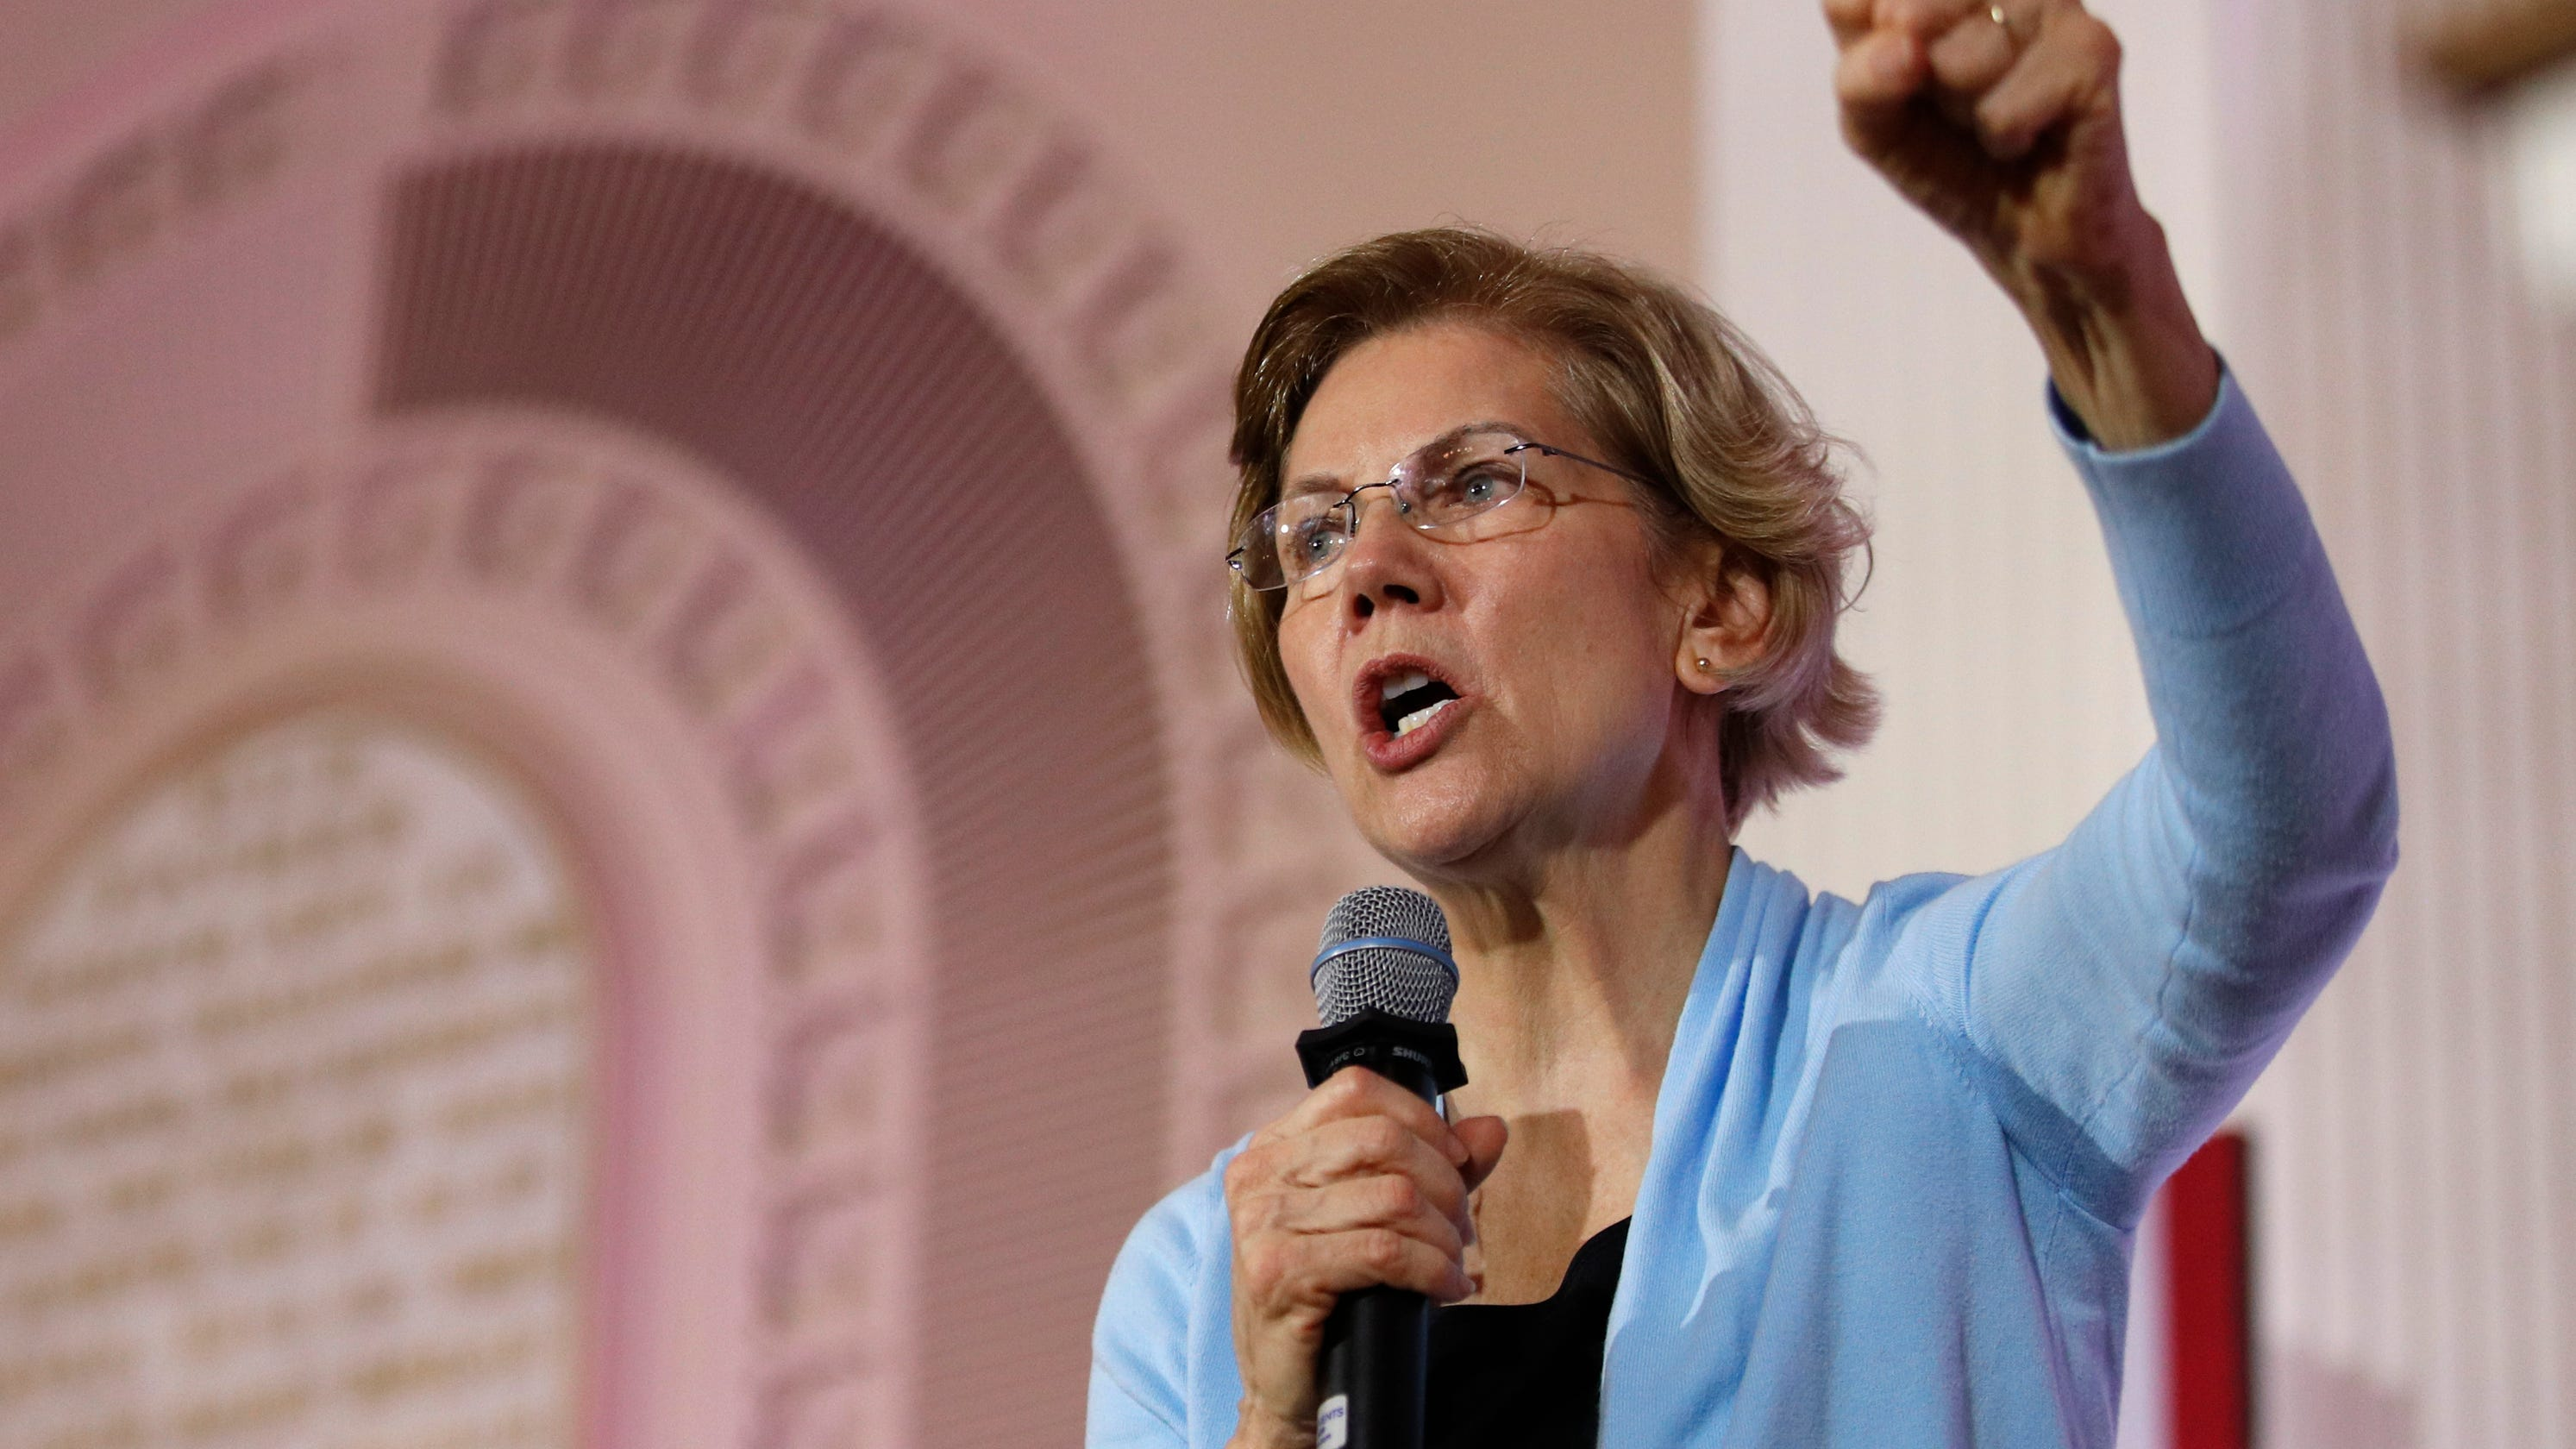 'A plan to fight back': How Elizabeth Warren stumbled in New Hampshire and her plan for 'the long haul' thumbnail